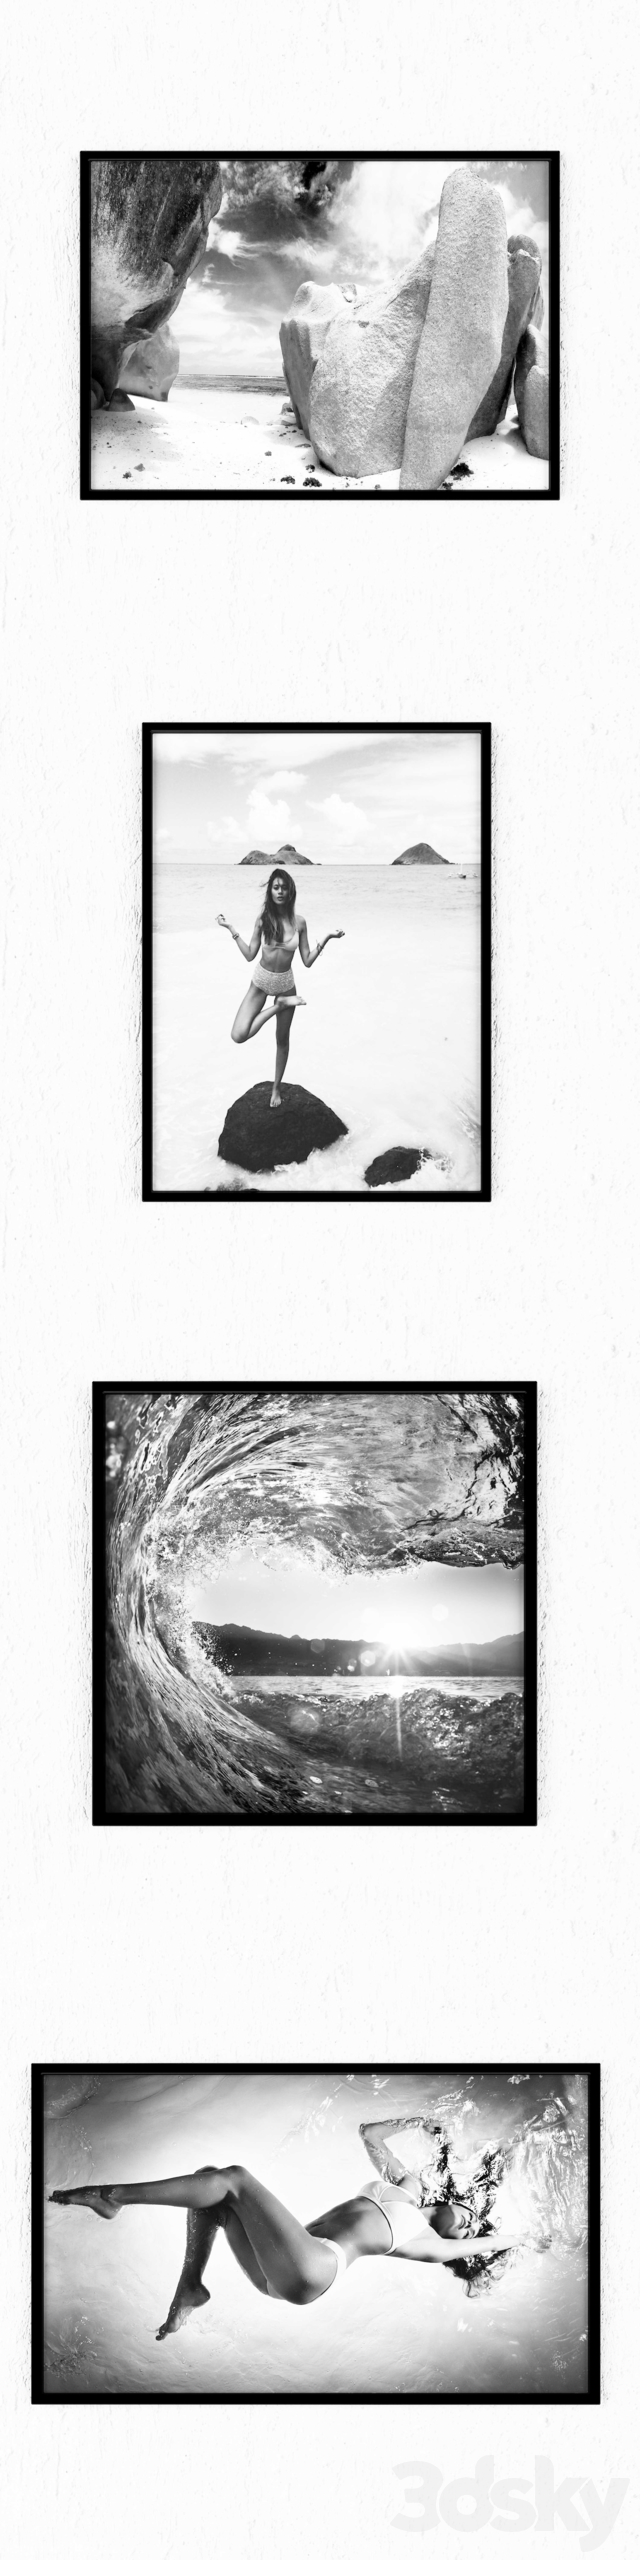 A series of black and white paintings